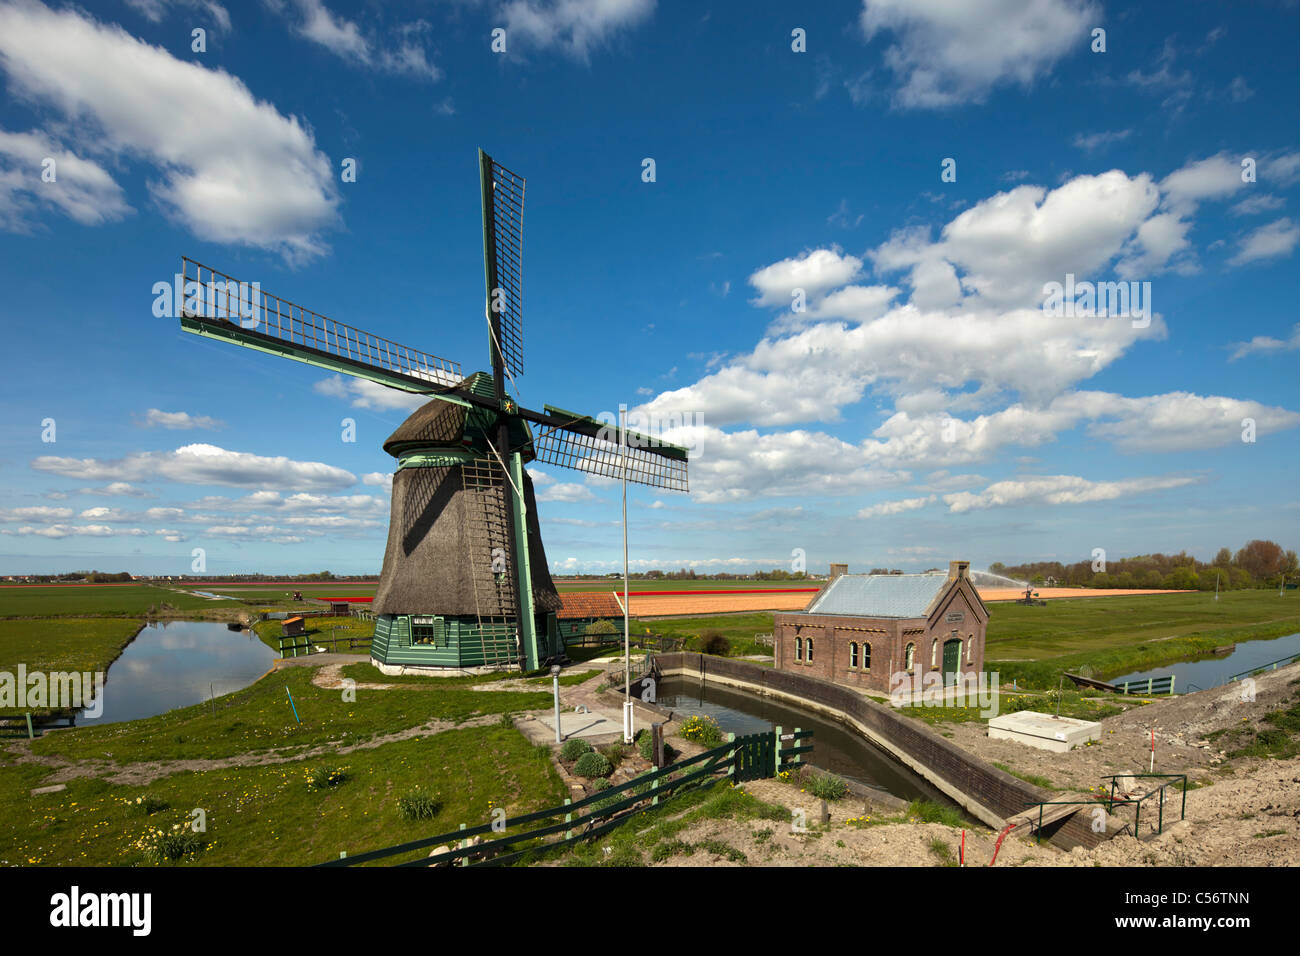 The Netherlands, Oosterdijk, Water pumping station near lake called Markermeer. - Stock Image